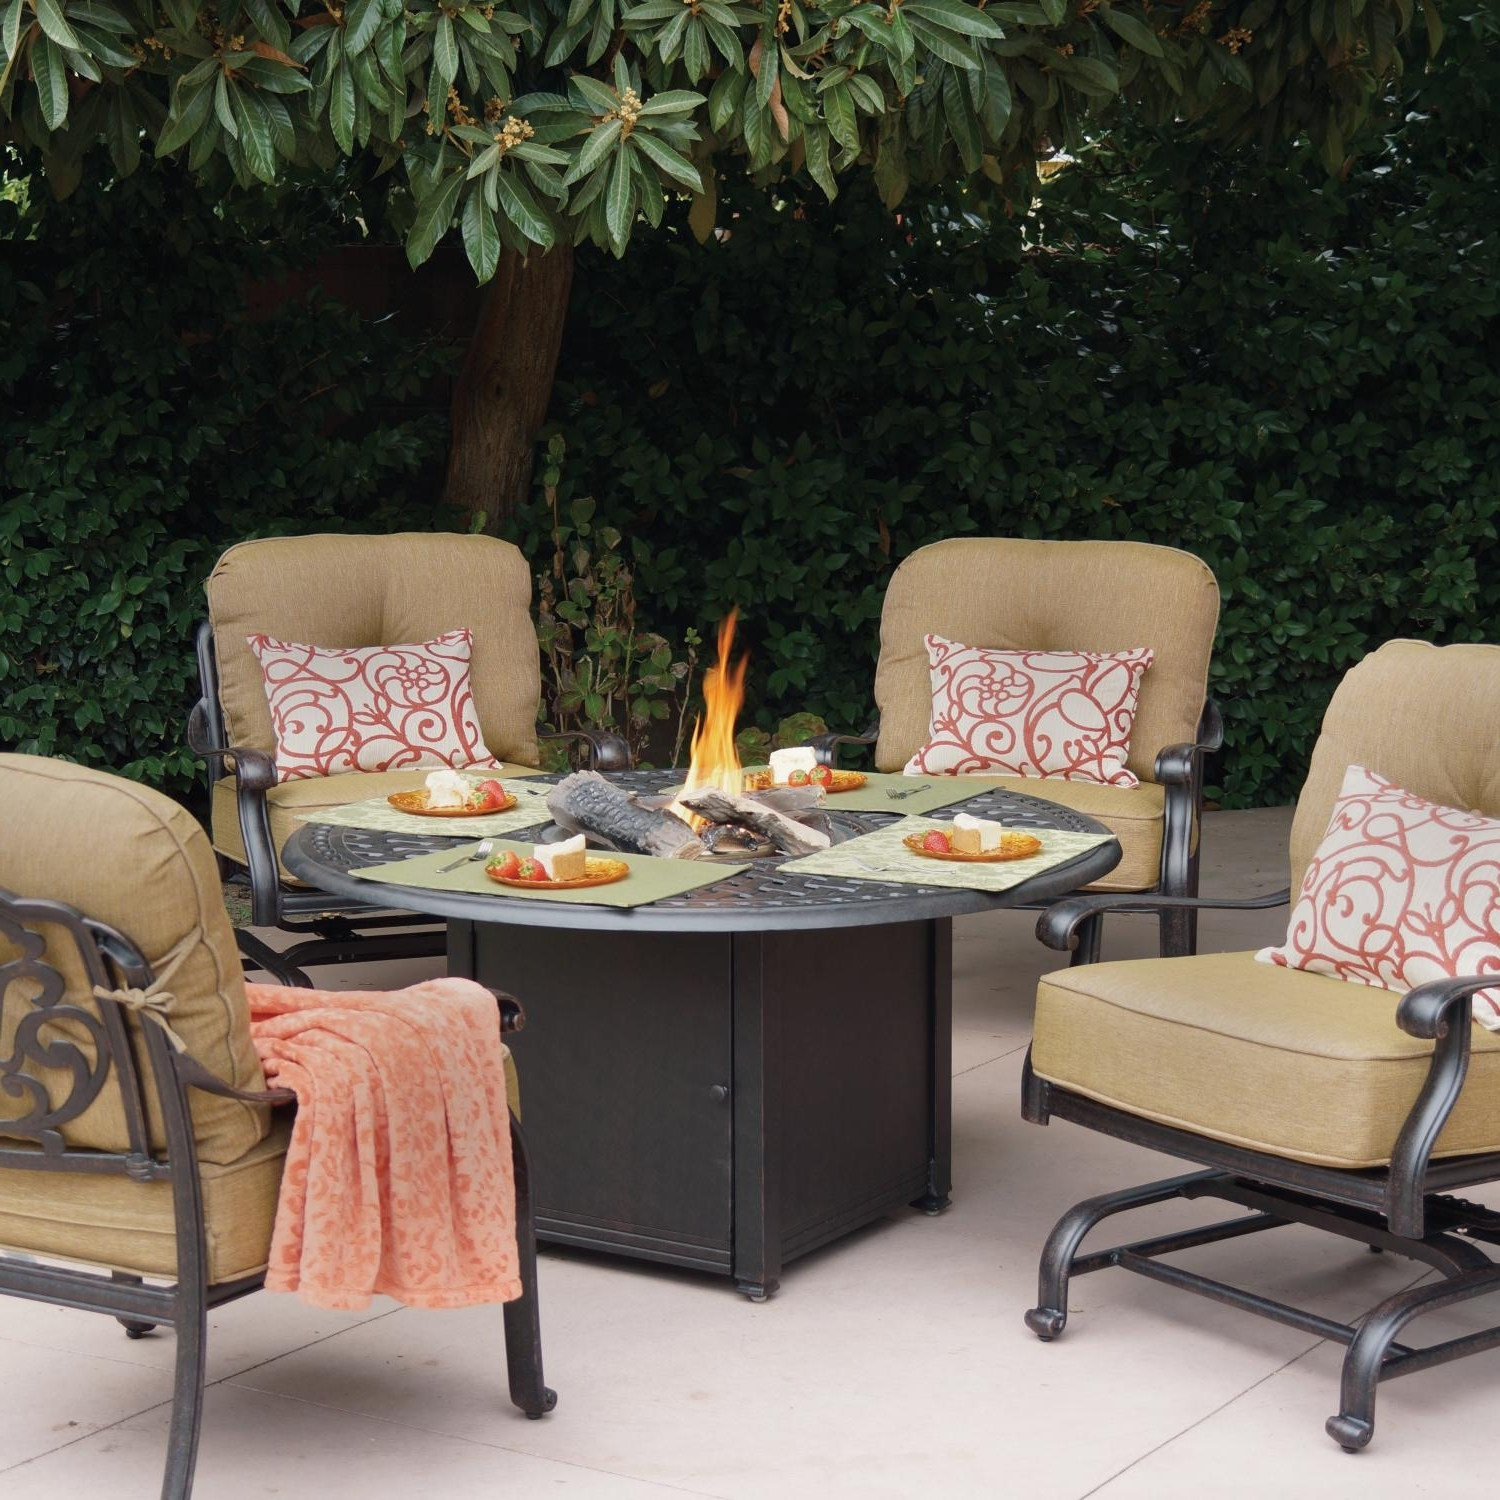 Patio Conversation Sets With Fire Pit Table In Widely Used Darlee Elisabeth 5 Piece Aluminum Patio Fire Pit Seating Set (View 9 of 15)